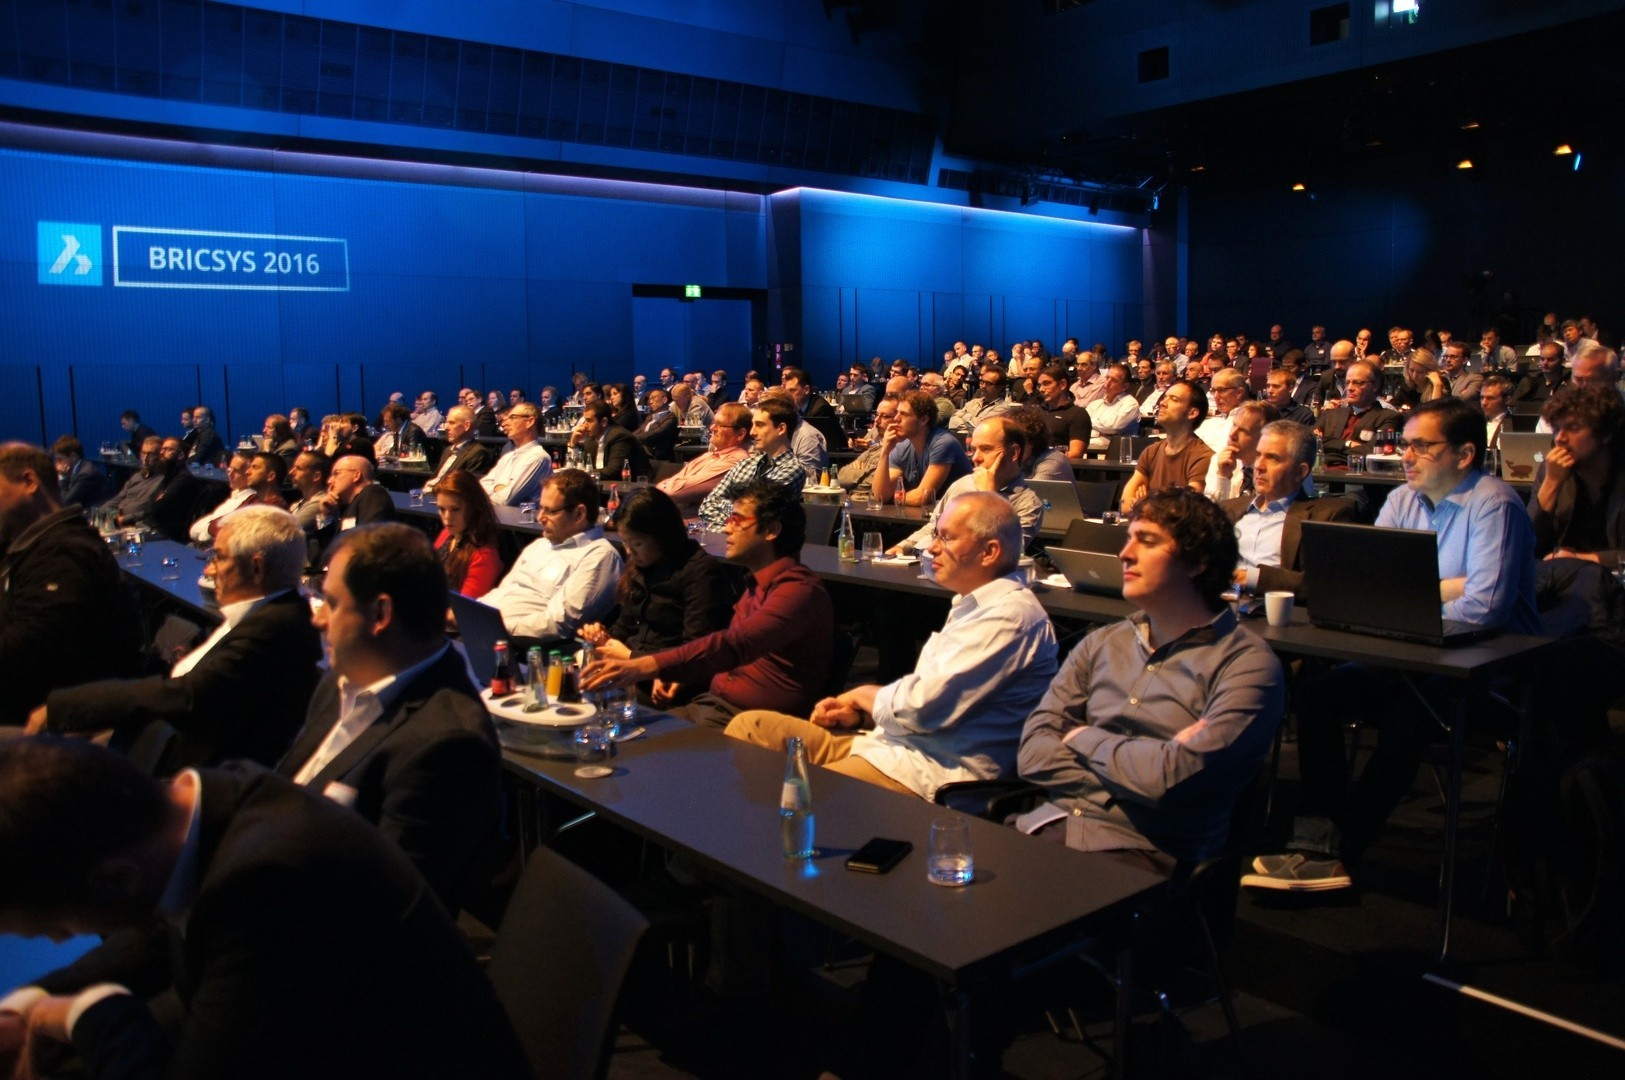 Bricsys Conference 2016 in 20 minutes